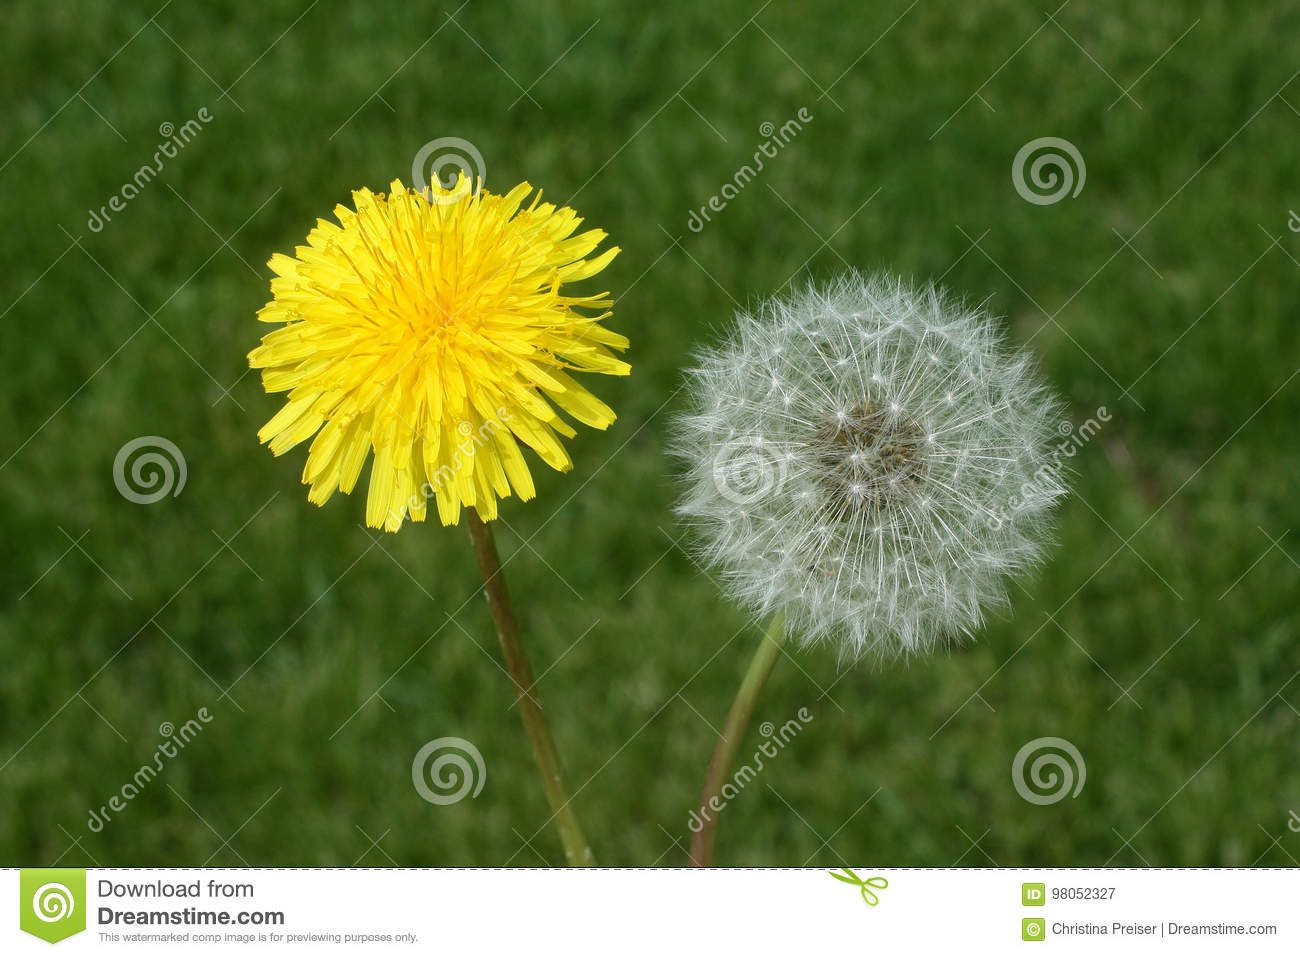 dandelion flower and seed head stock image - image of summer